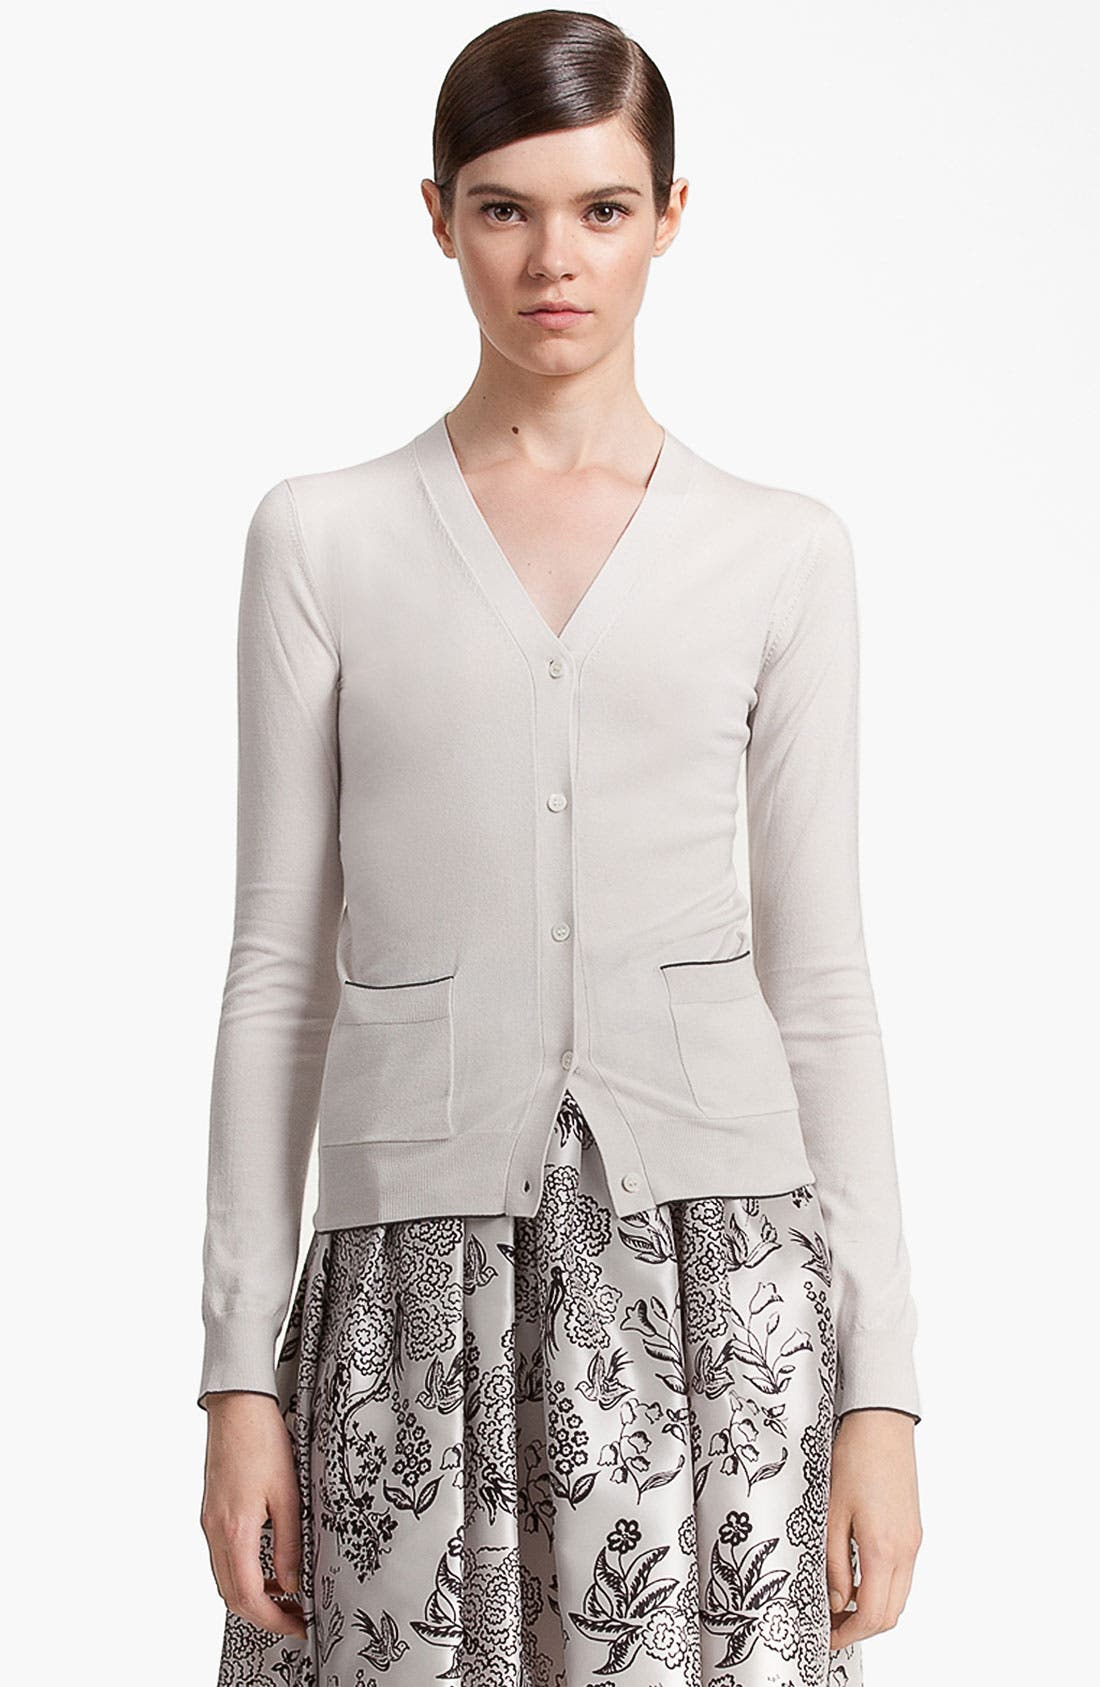 Alternate Image 1 Selected - Jil Sander Navy Piped Stretch Knit Cardigan